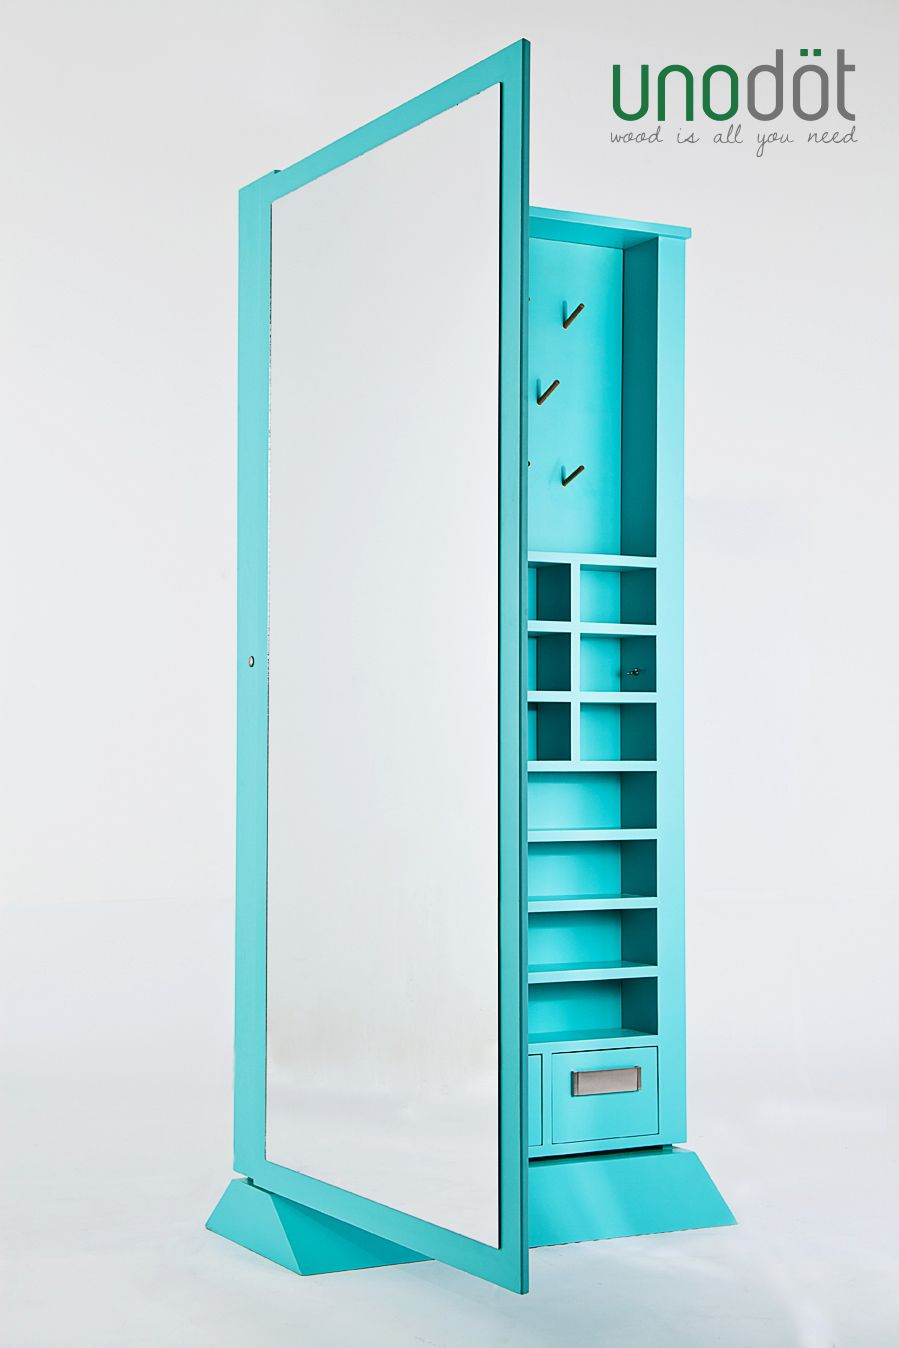 Muebles Para Guardar Bijouterie - Espejo Organizador De Accesorios Ideas Pinterest [mjhdah]https://images-na.ssl-images-amazon.com/images/I/71FSg33LTIL._SL1500_.jpg